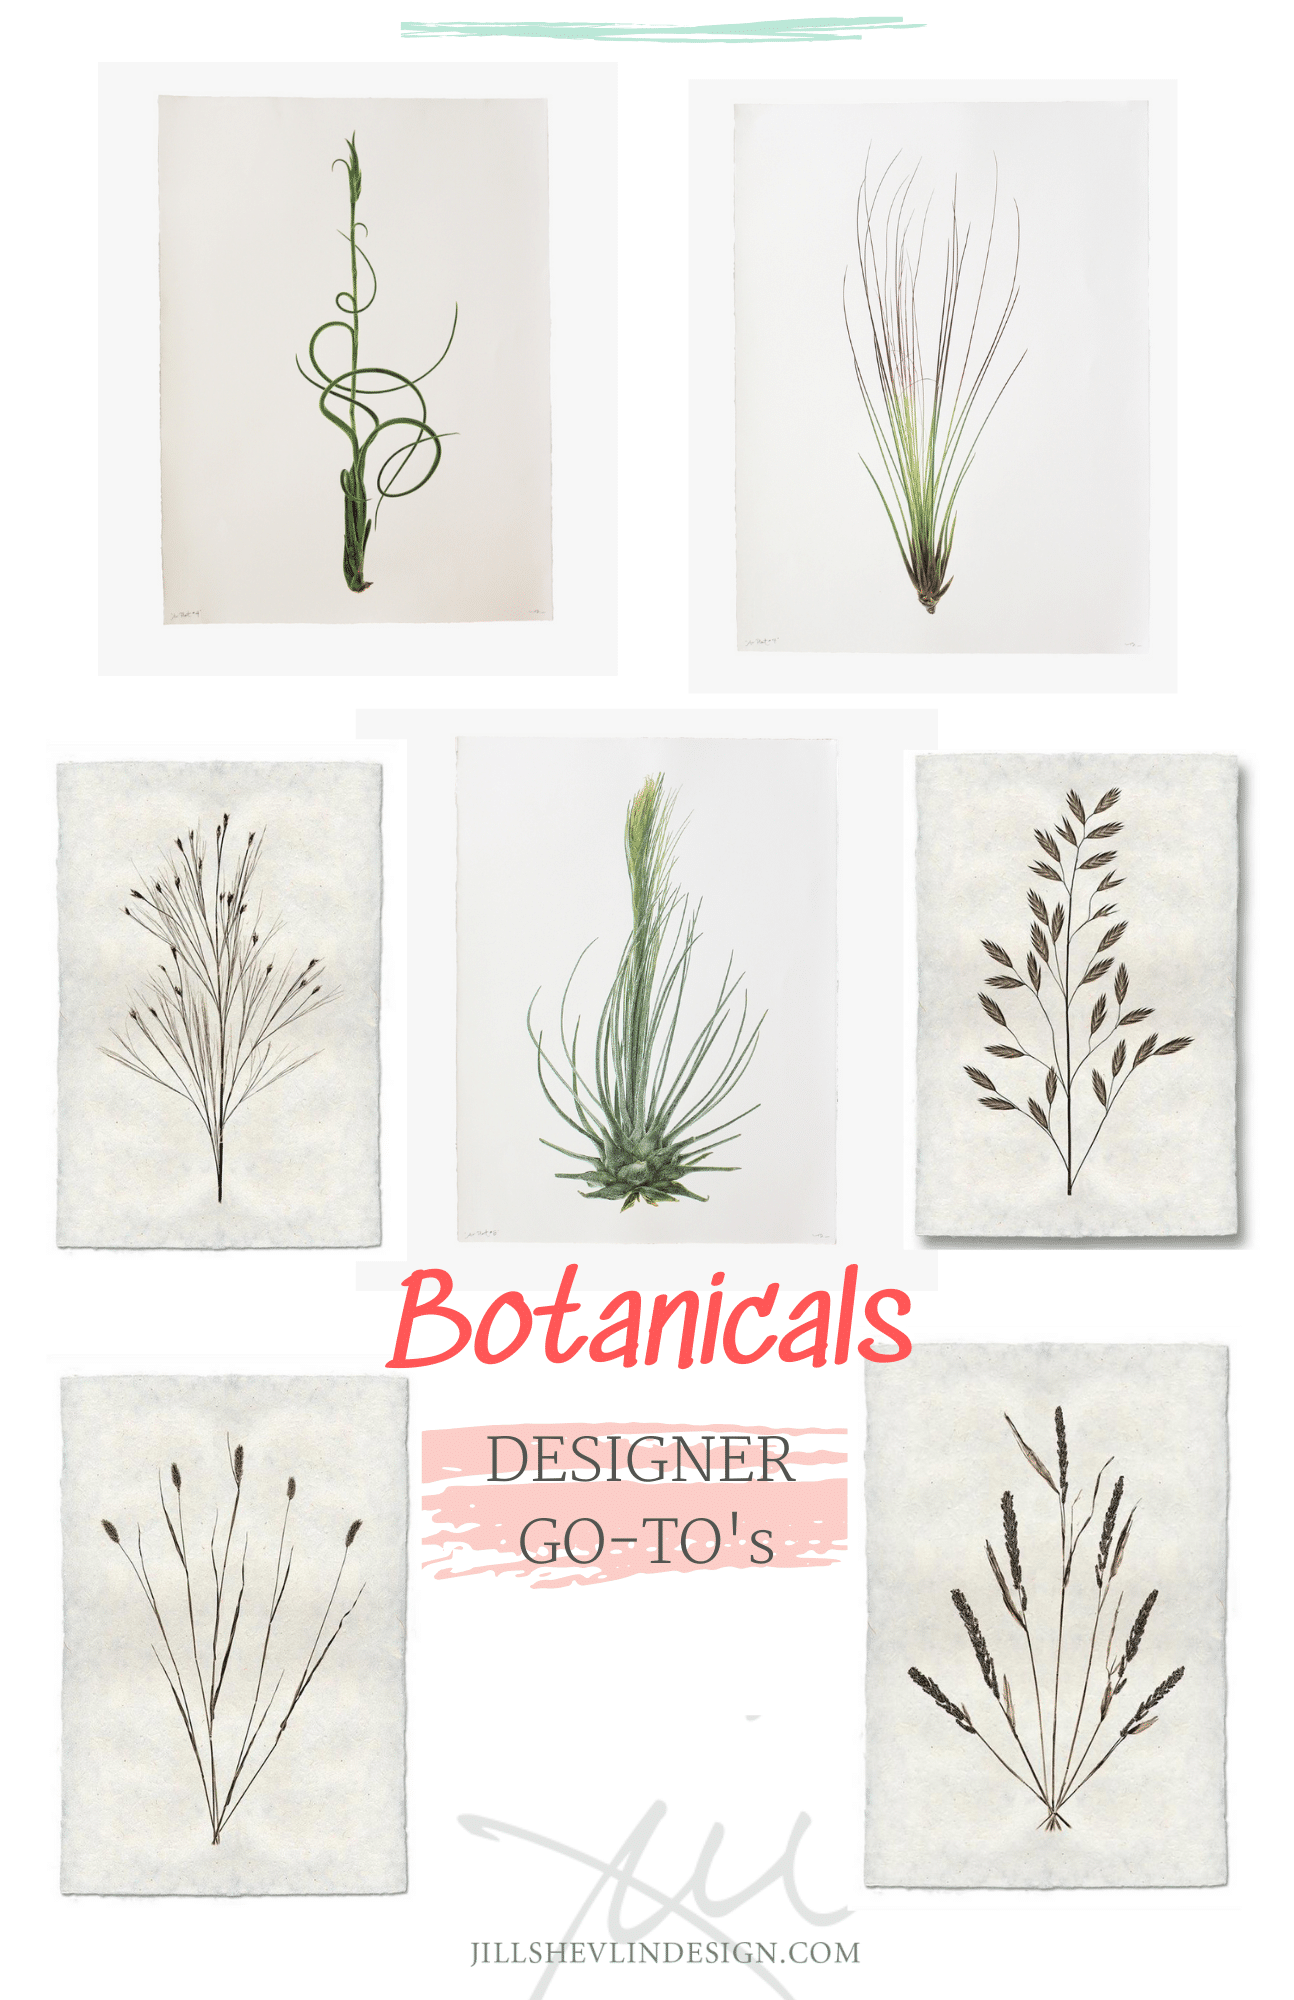 Favorite Finds Botanicals Jill Shevln Design Vero Beach Interior Designer